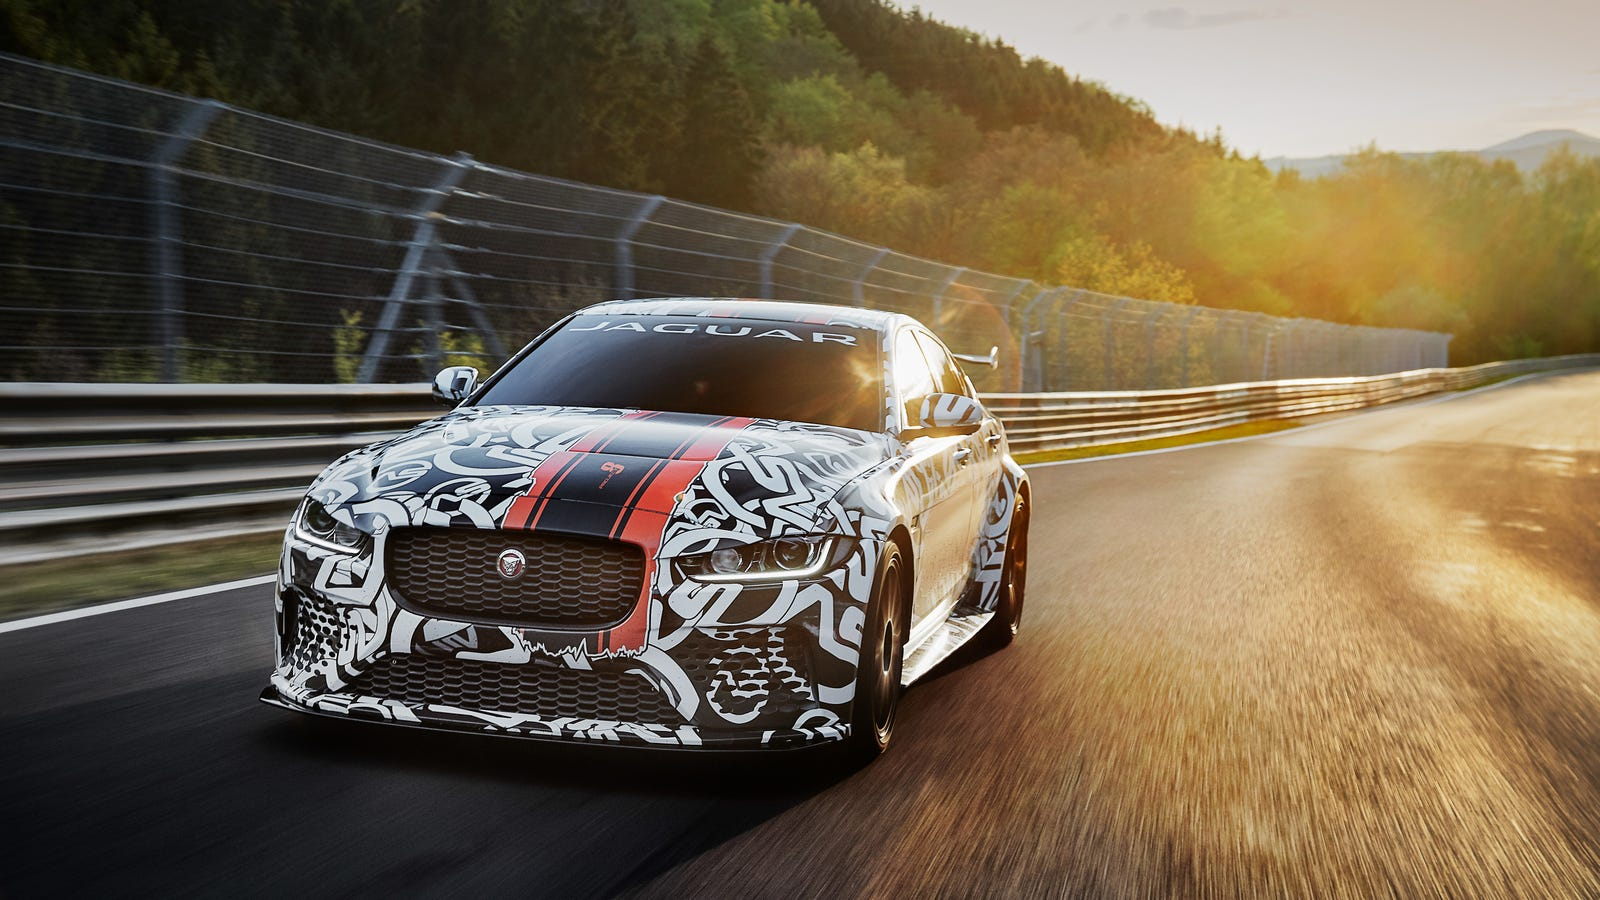 Jaguar Turned Its Smallest Car Into The Most Powerful Jag